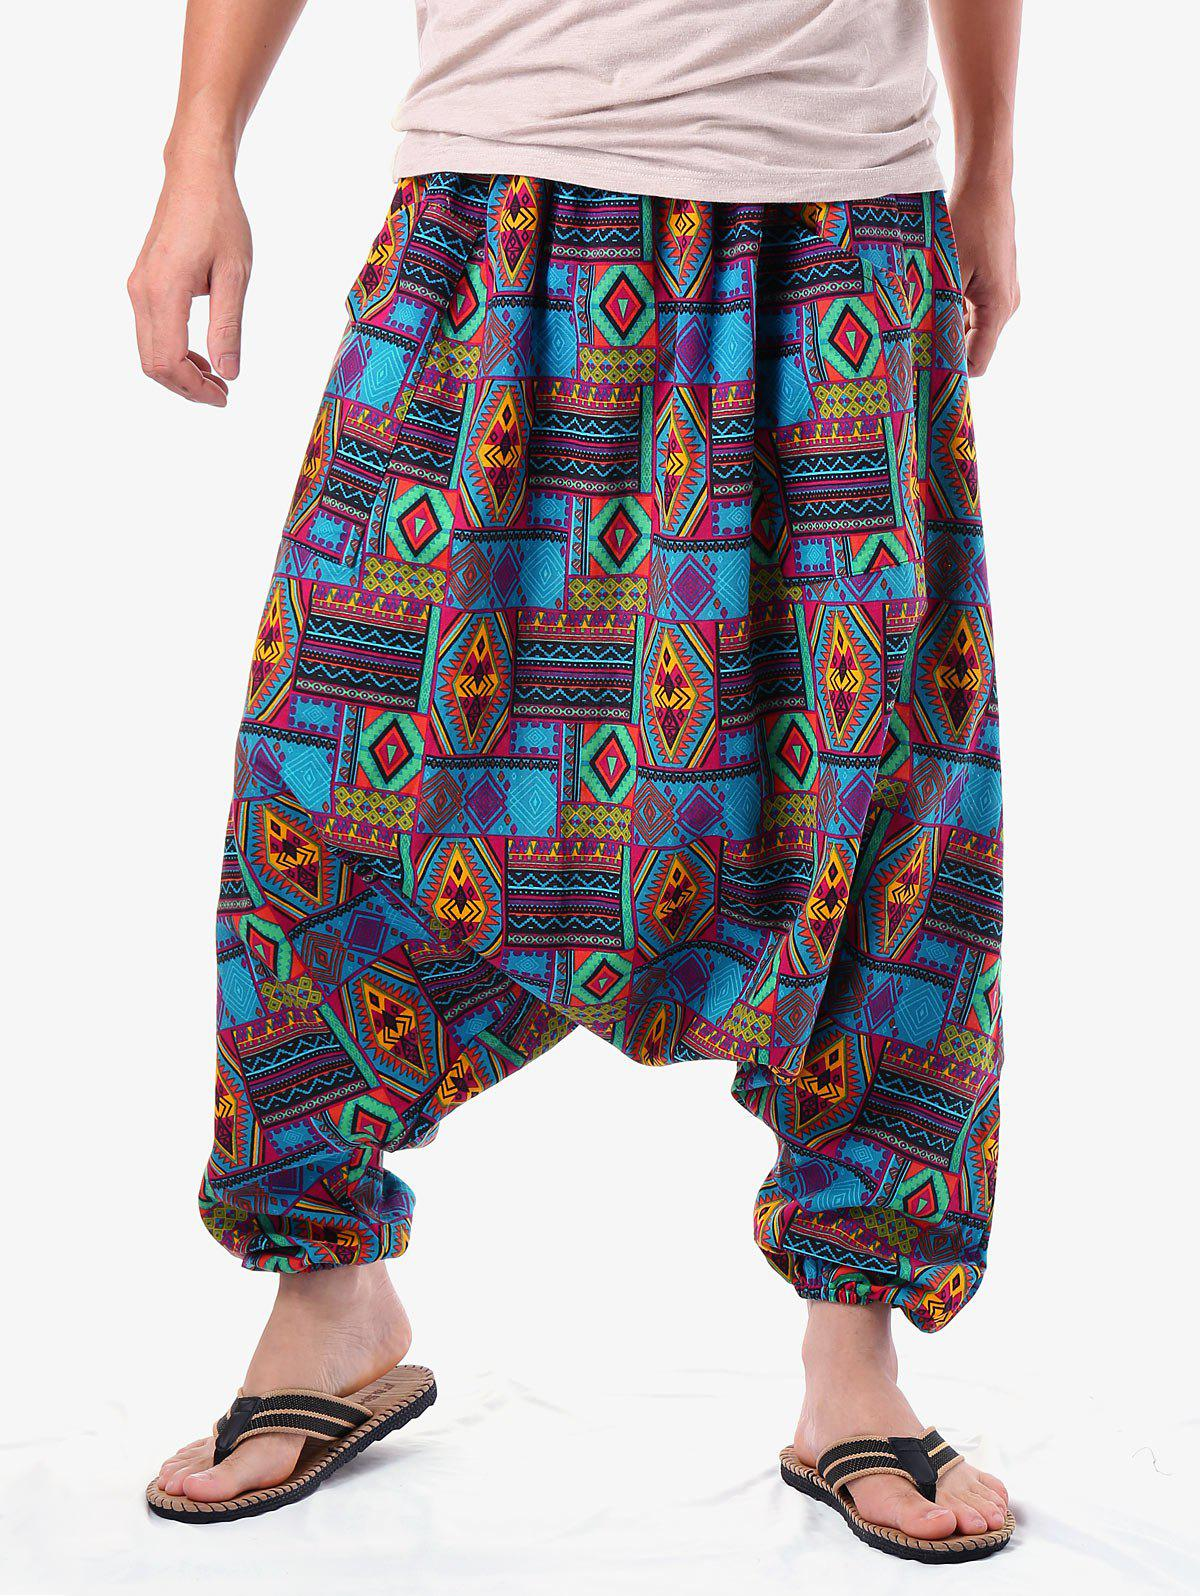 Discount Retro Geometric Print Harem Pants